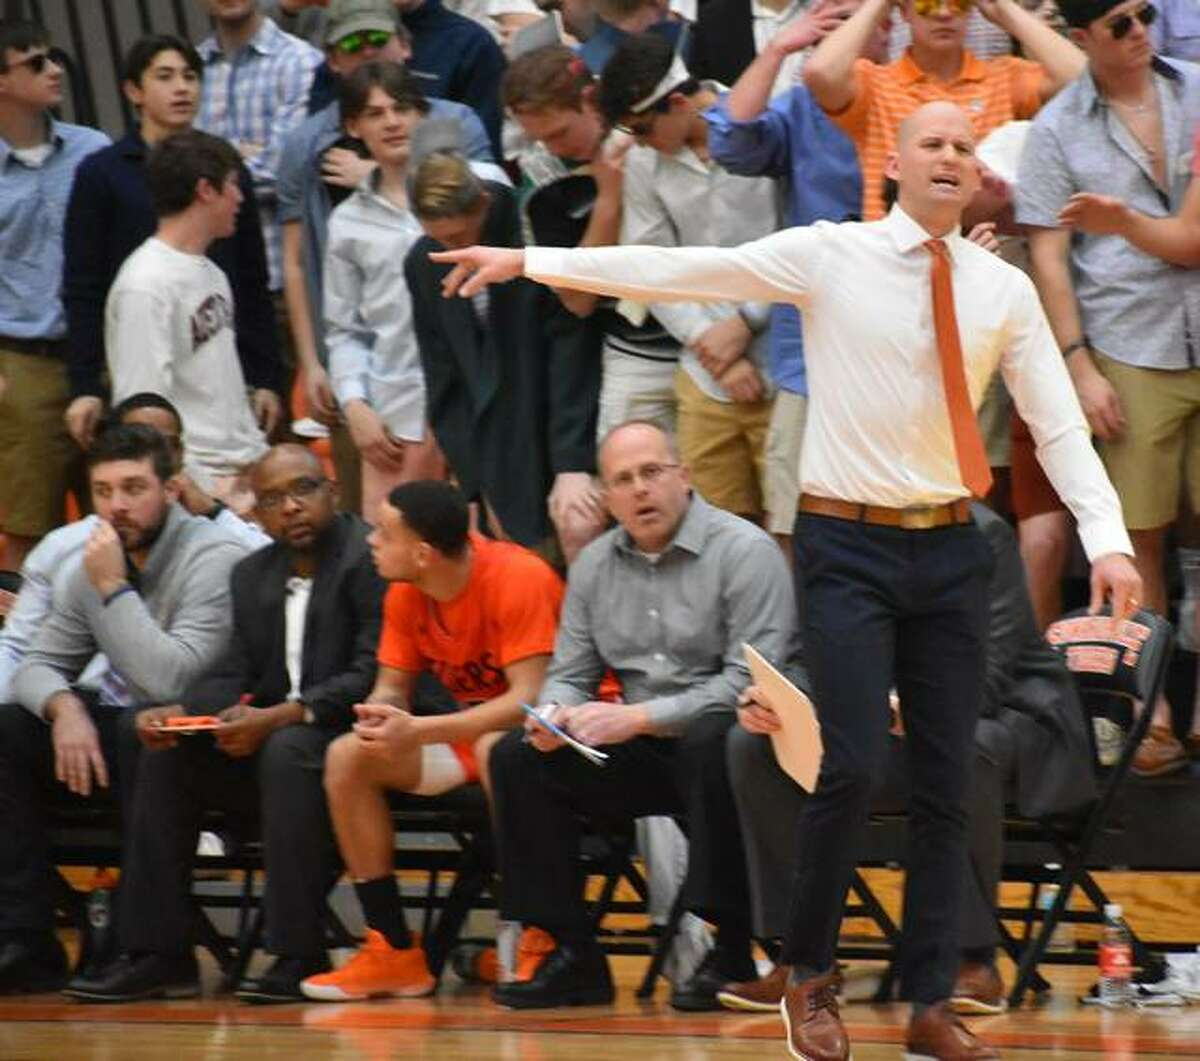 Edwardsville coach Dustin Battas shouts out instructions from the bench during the first half against O'Fallon in the regional championship game.